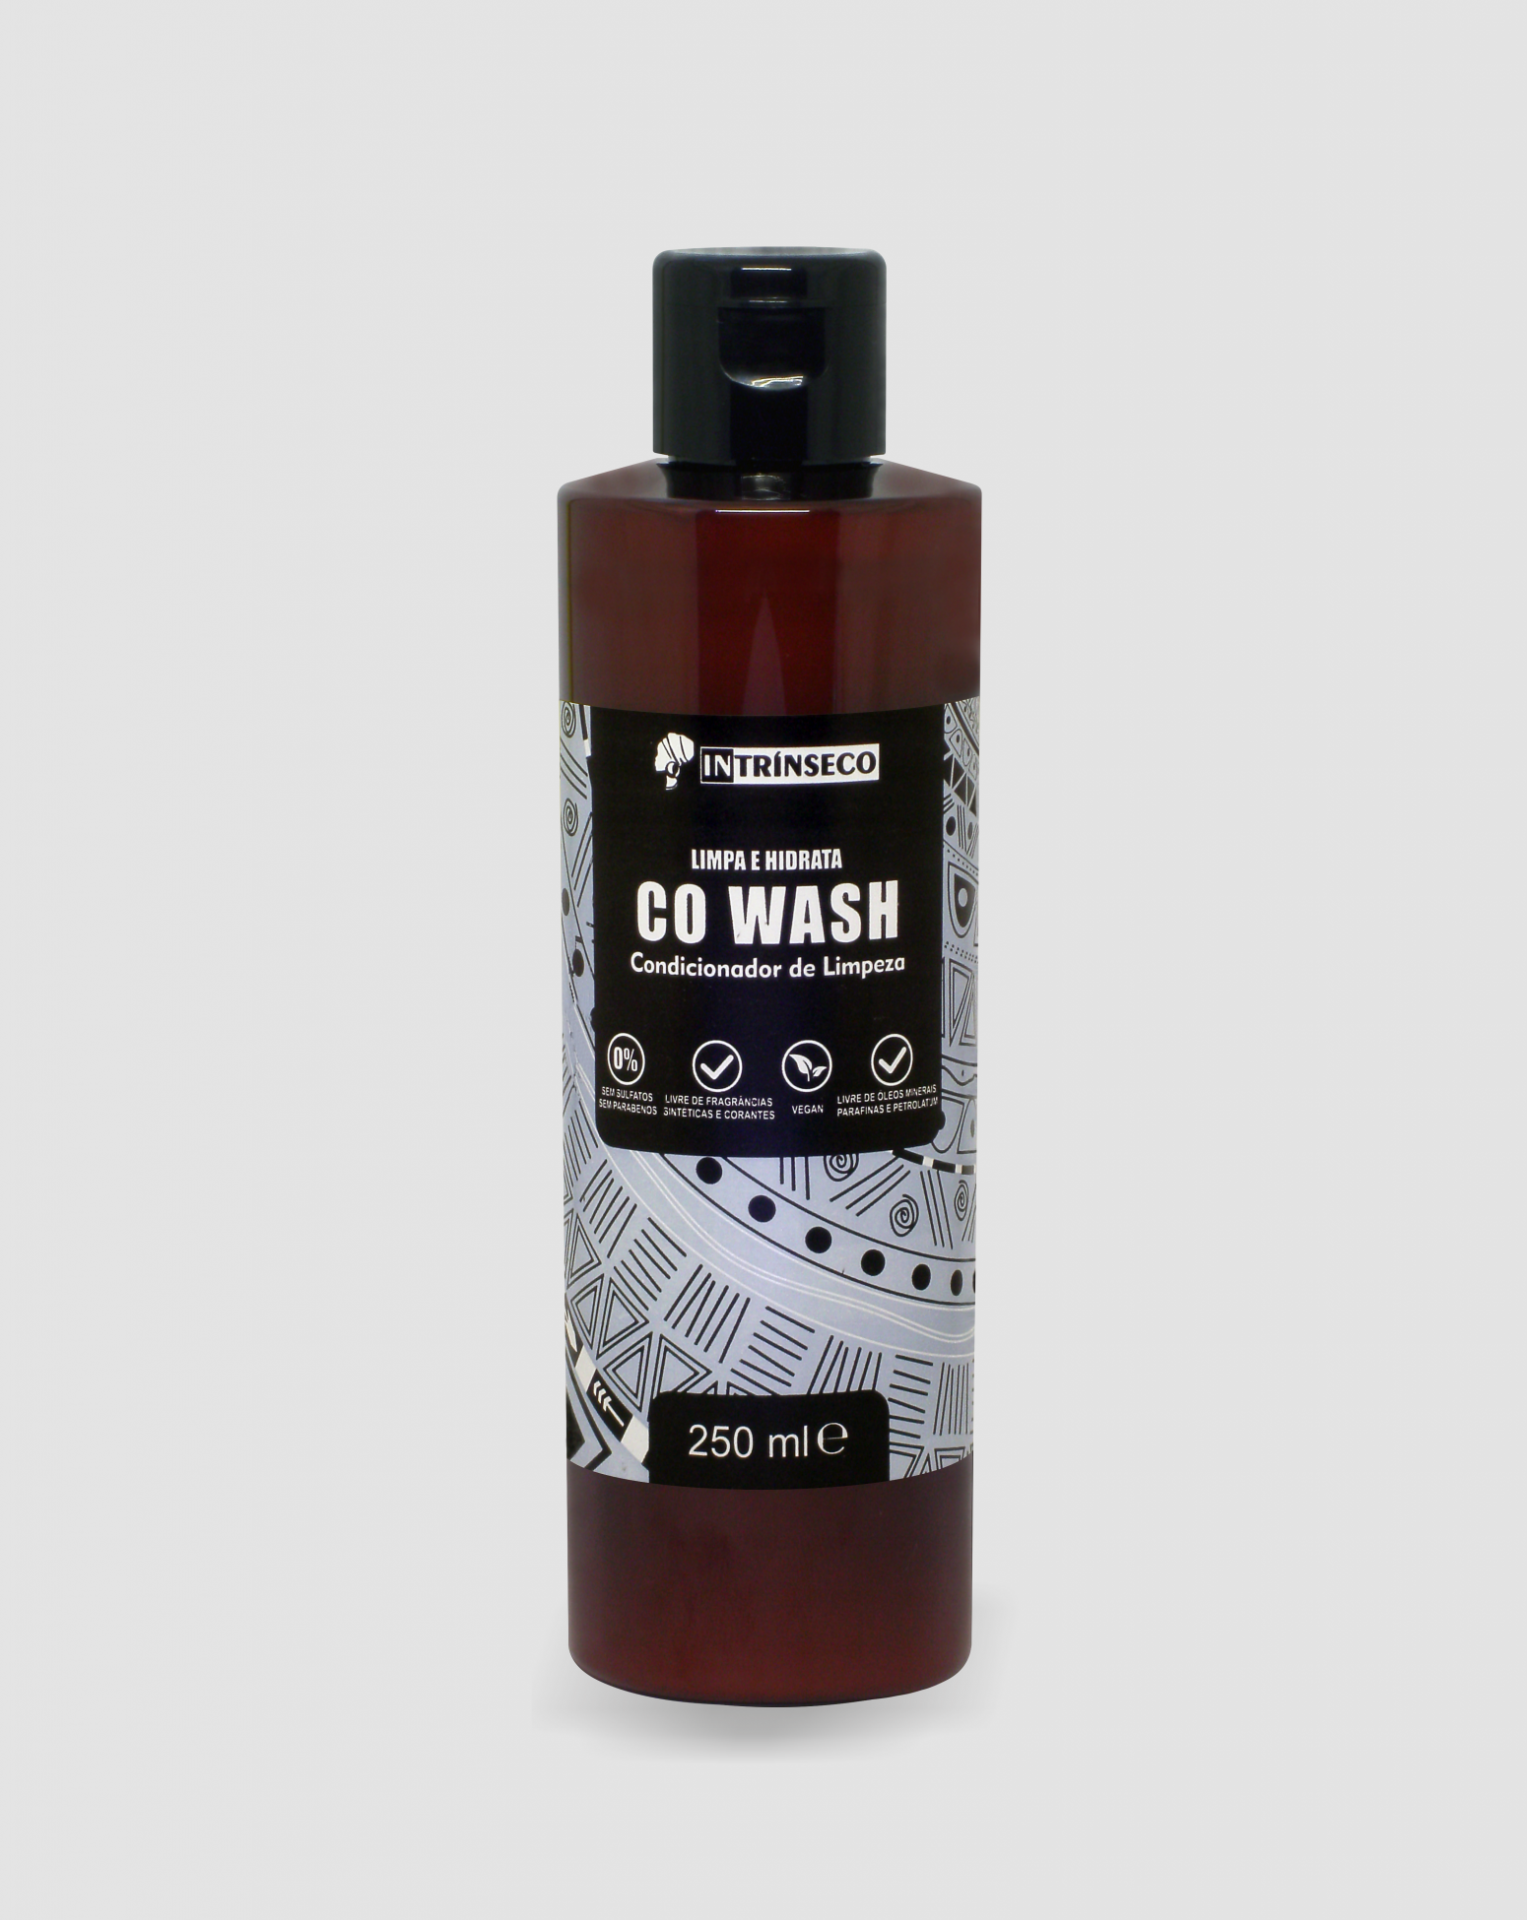 Co Wash - Condicionador de Limpeza 250ml